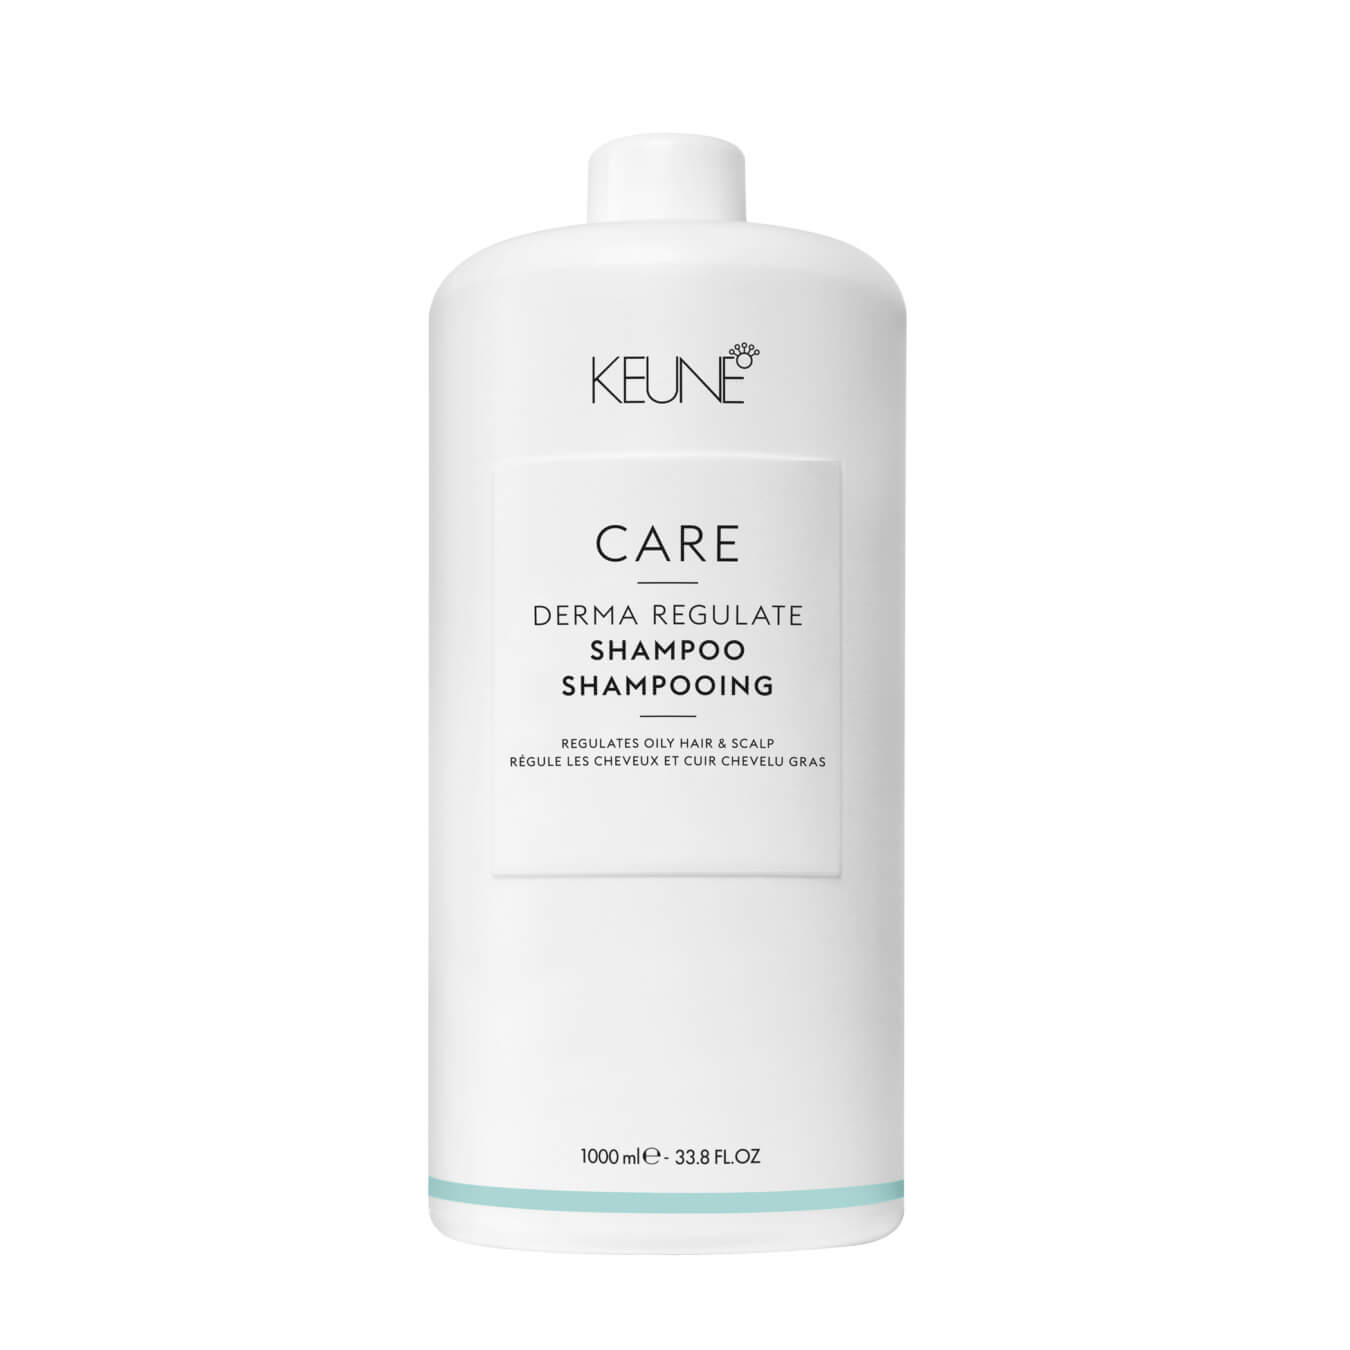 Koop Keune Care Derma Regulate Shampoo 1000ml